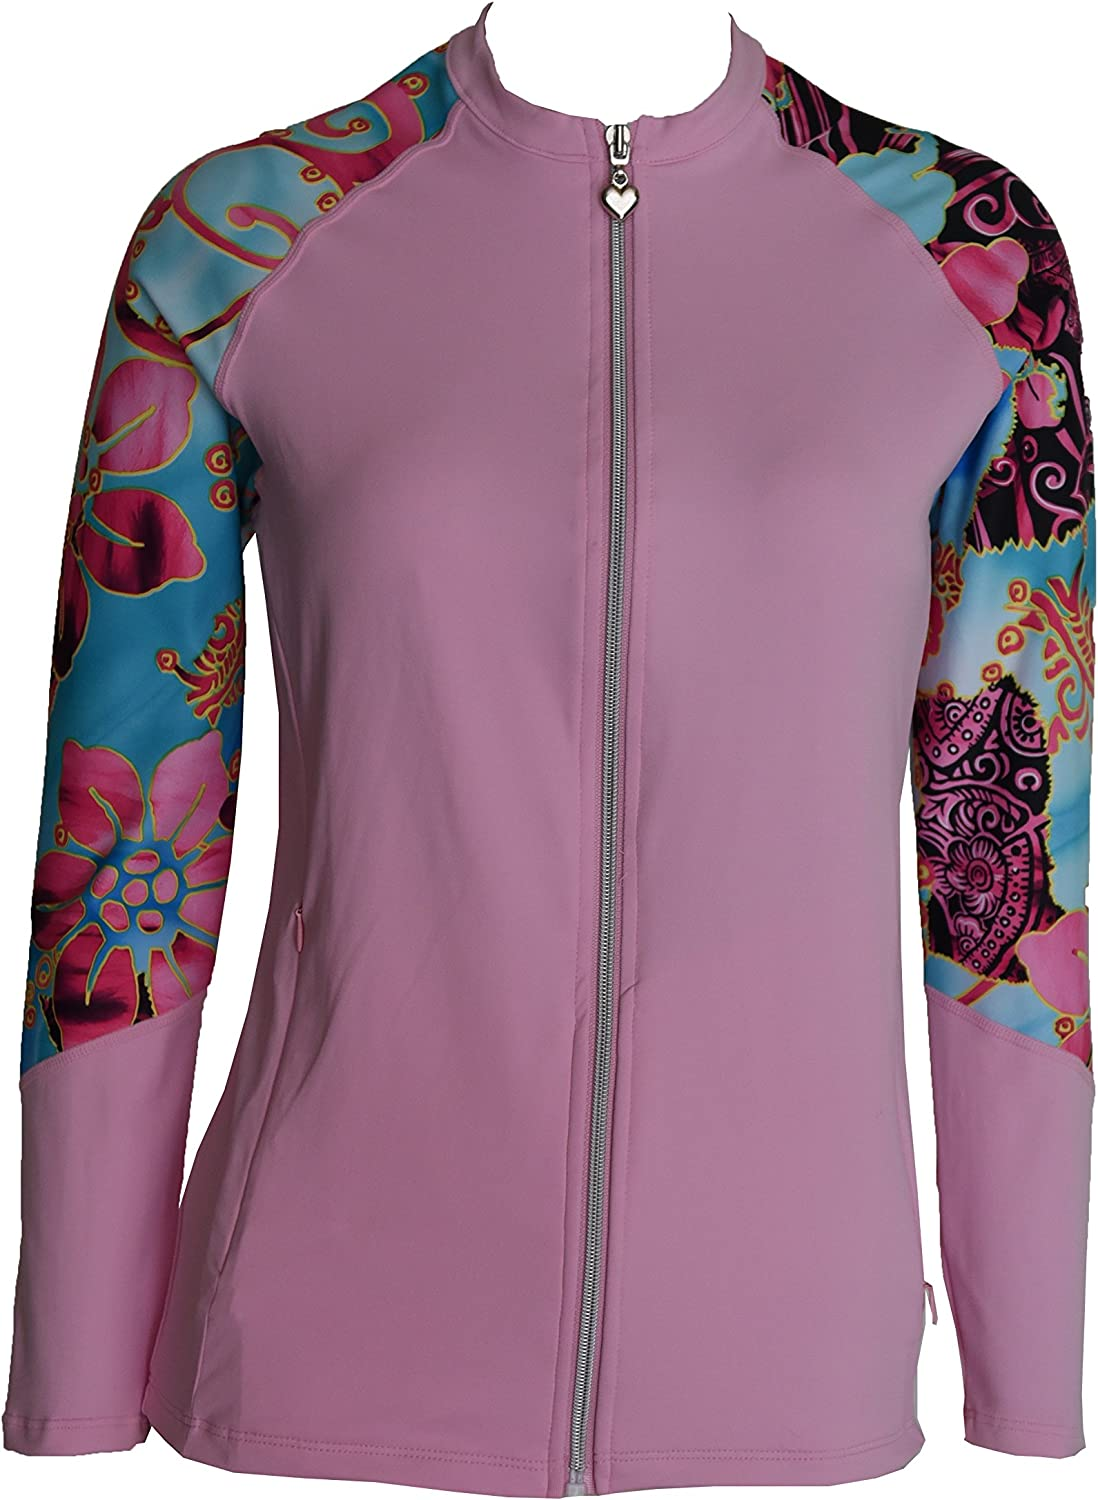 Private Island Hawaii Women UV Wetsuits Long Raglan Sleeve Rash Guard Top Zipper Jacket Pocket Outdoor Yoga (Large, PwSBP)